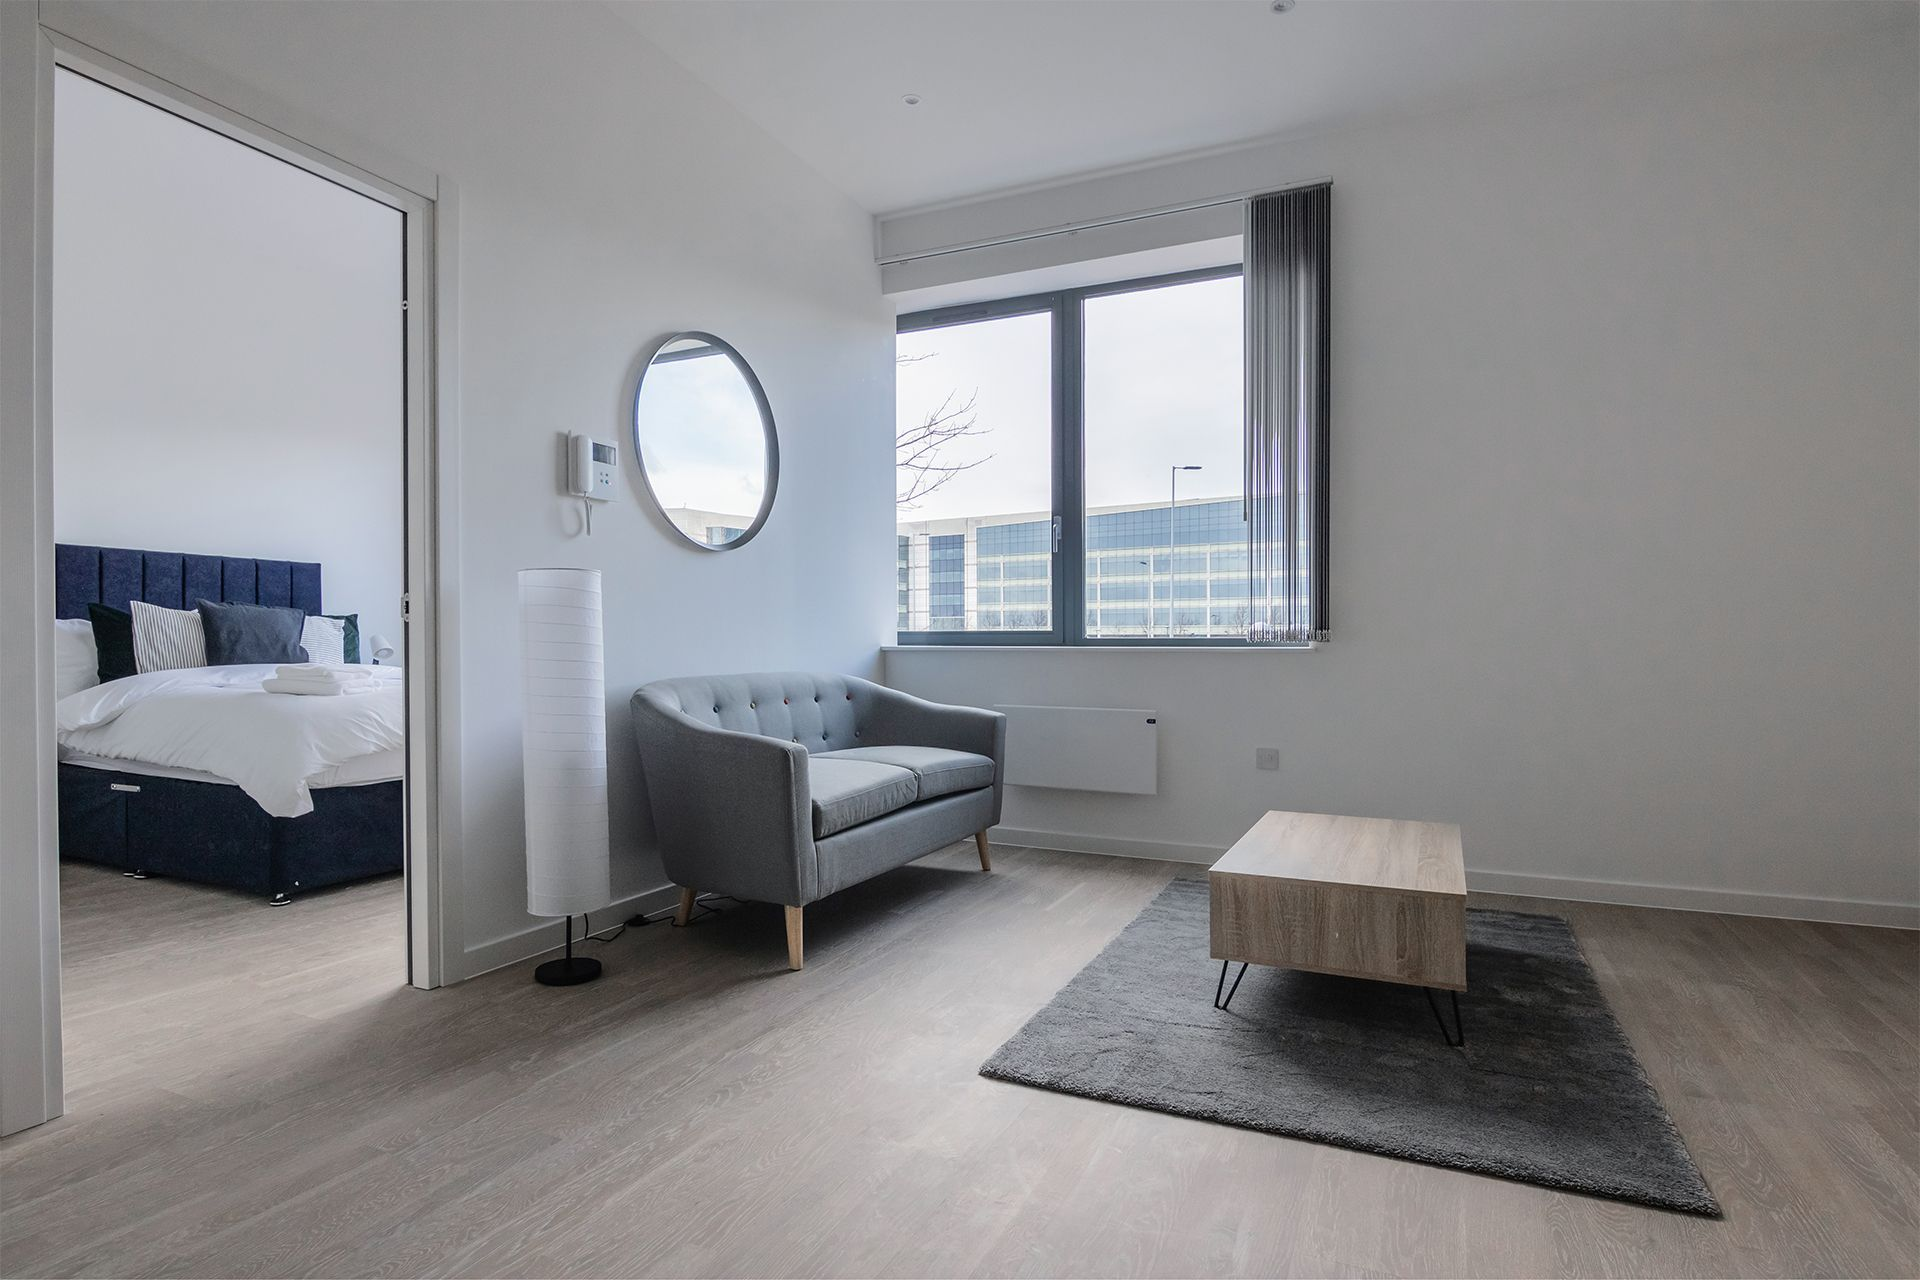 1 Bedroom apartment to rent in London VIL-SA-0049